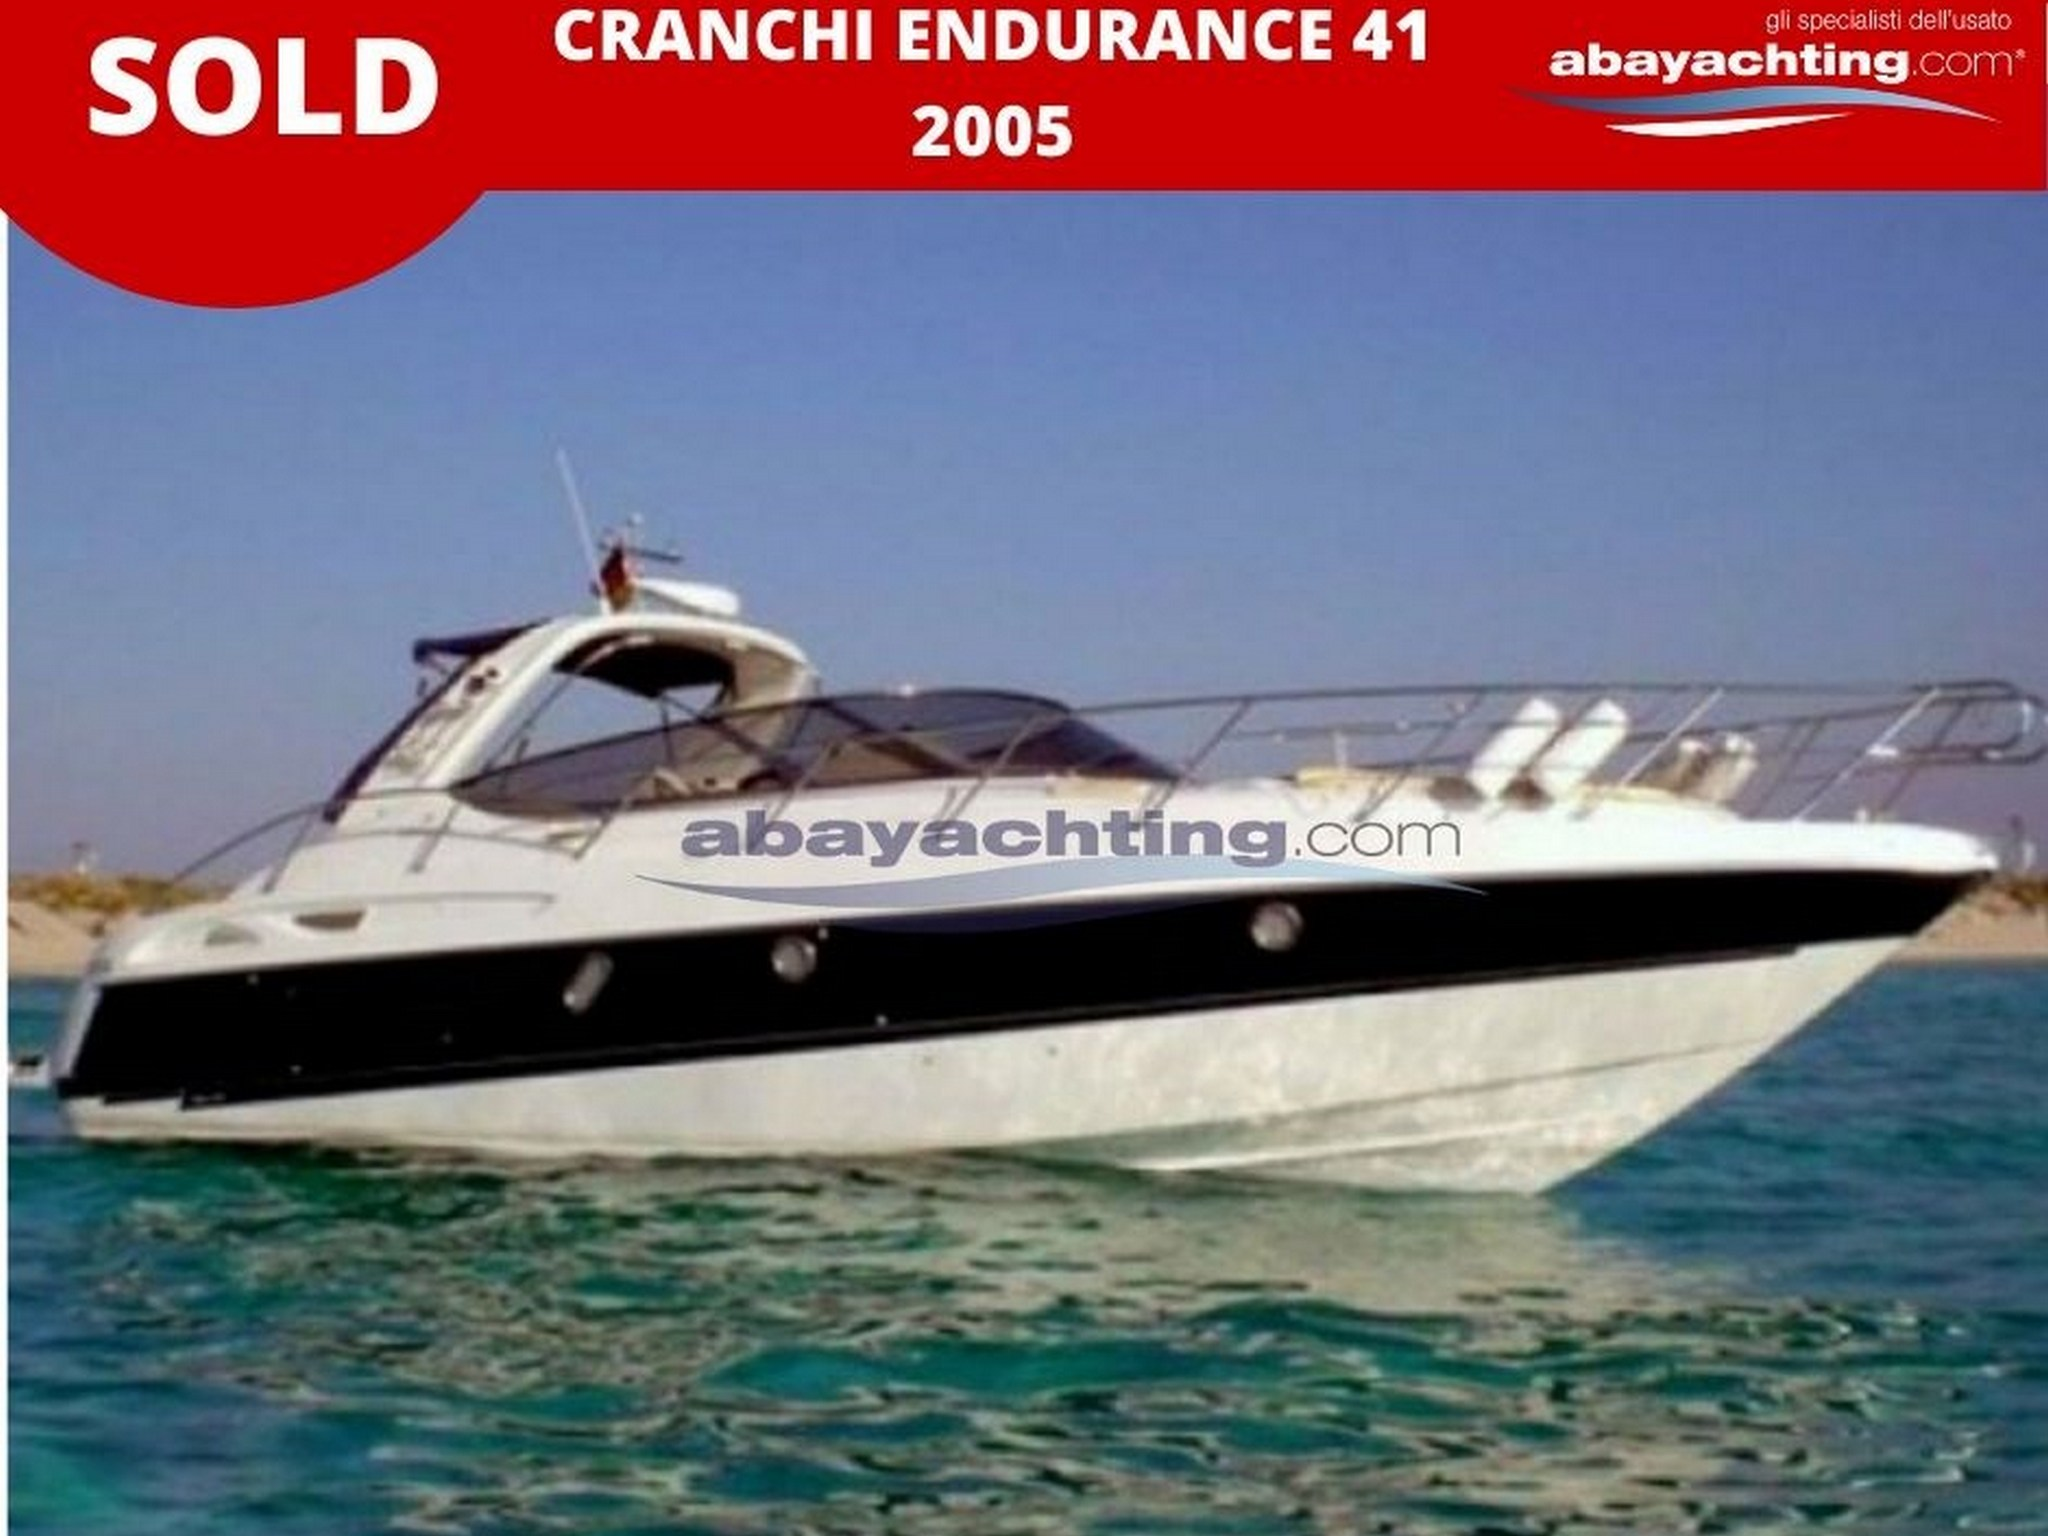 Cranchi Endurance 41 sold